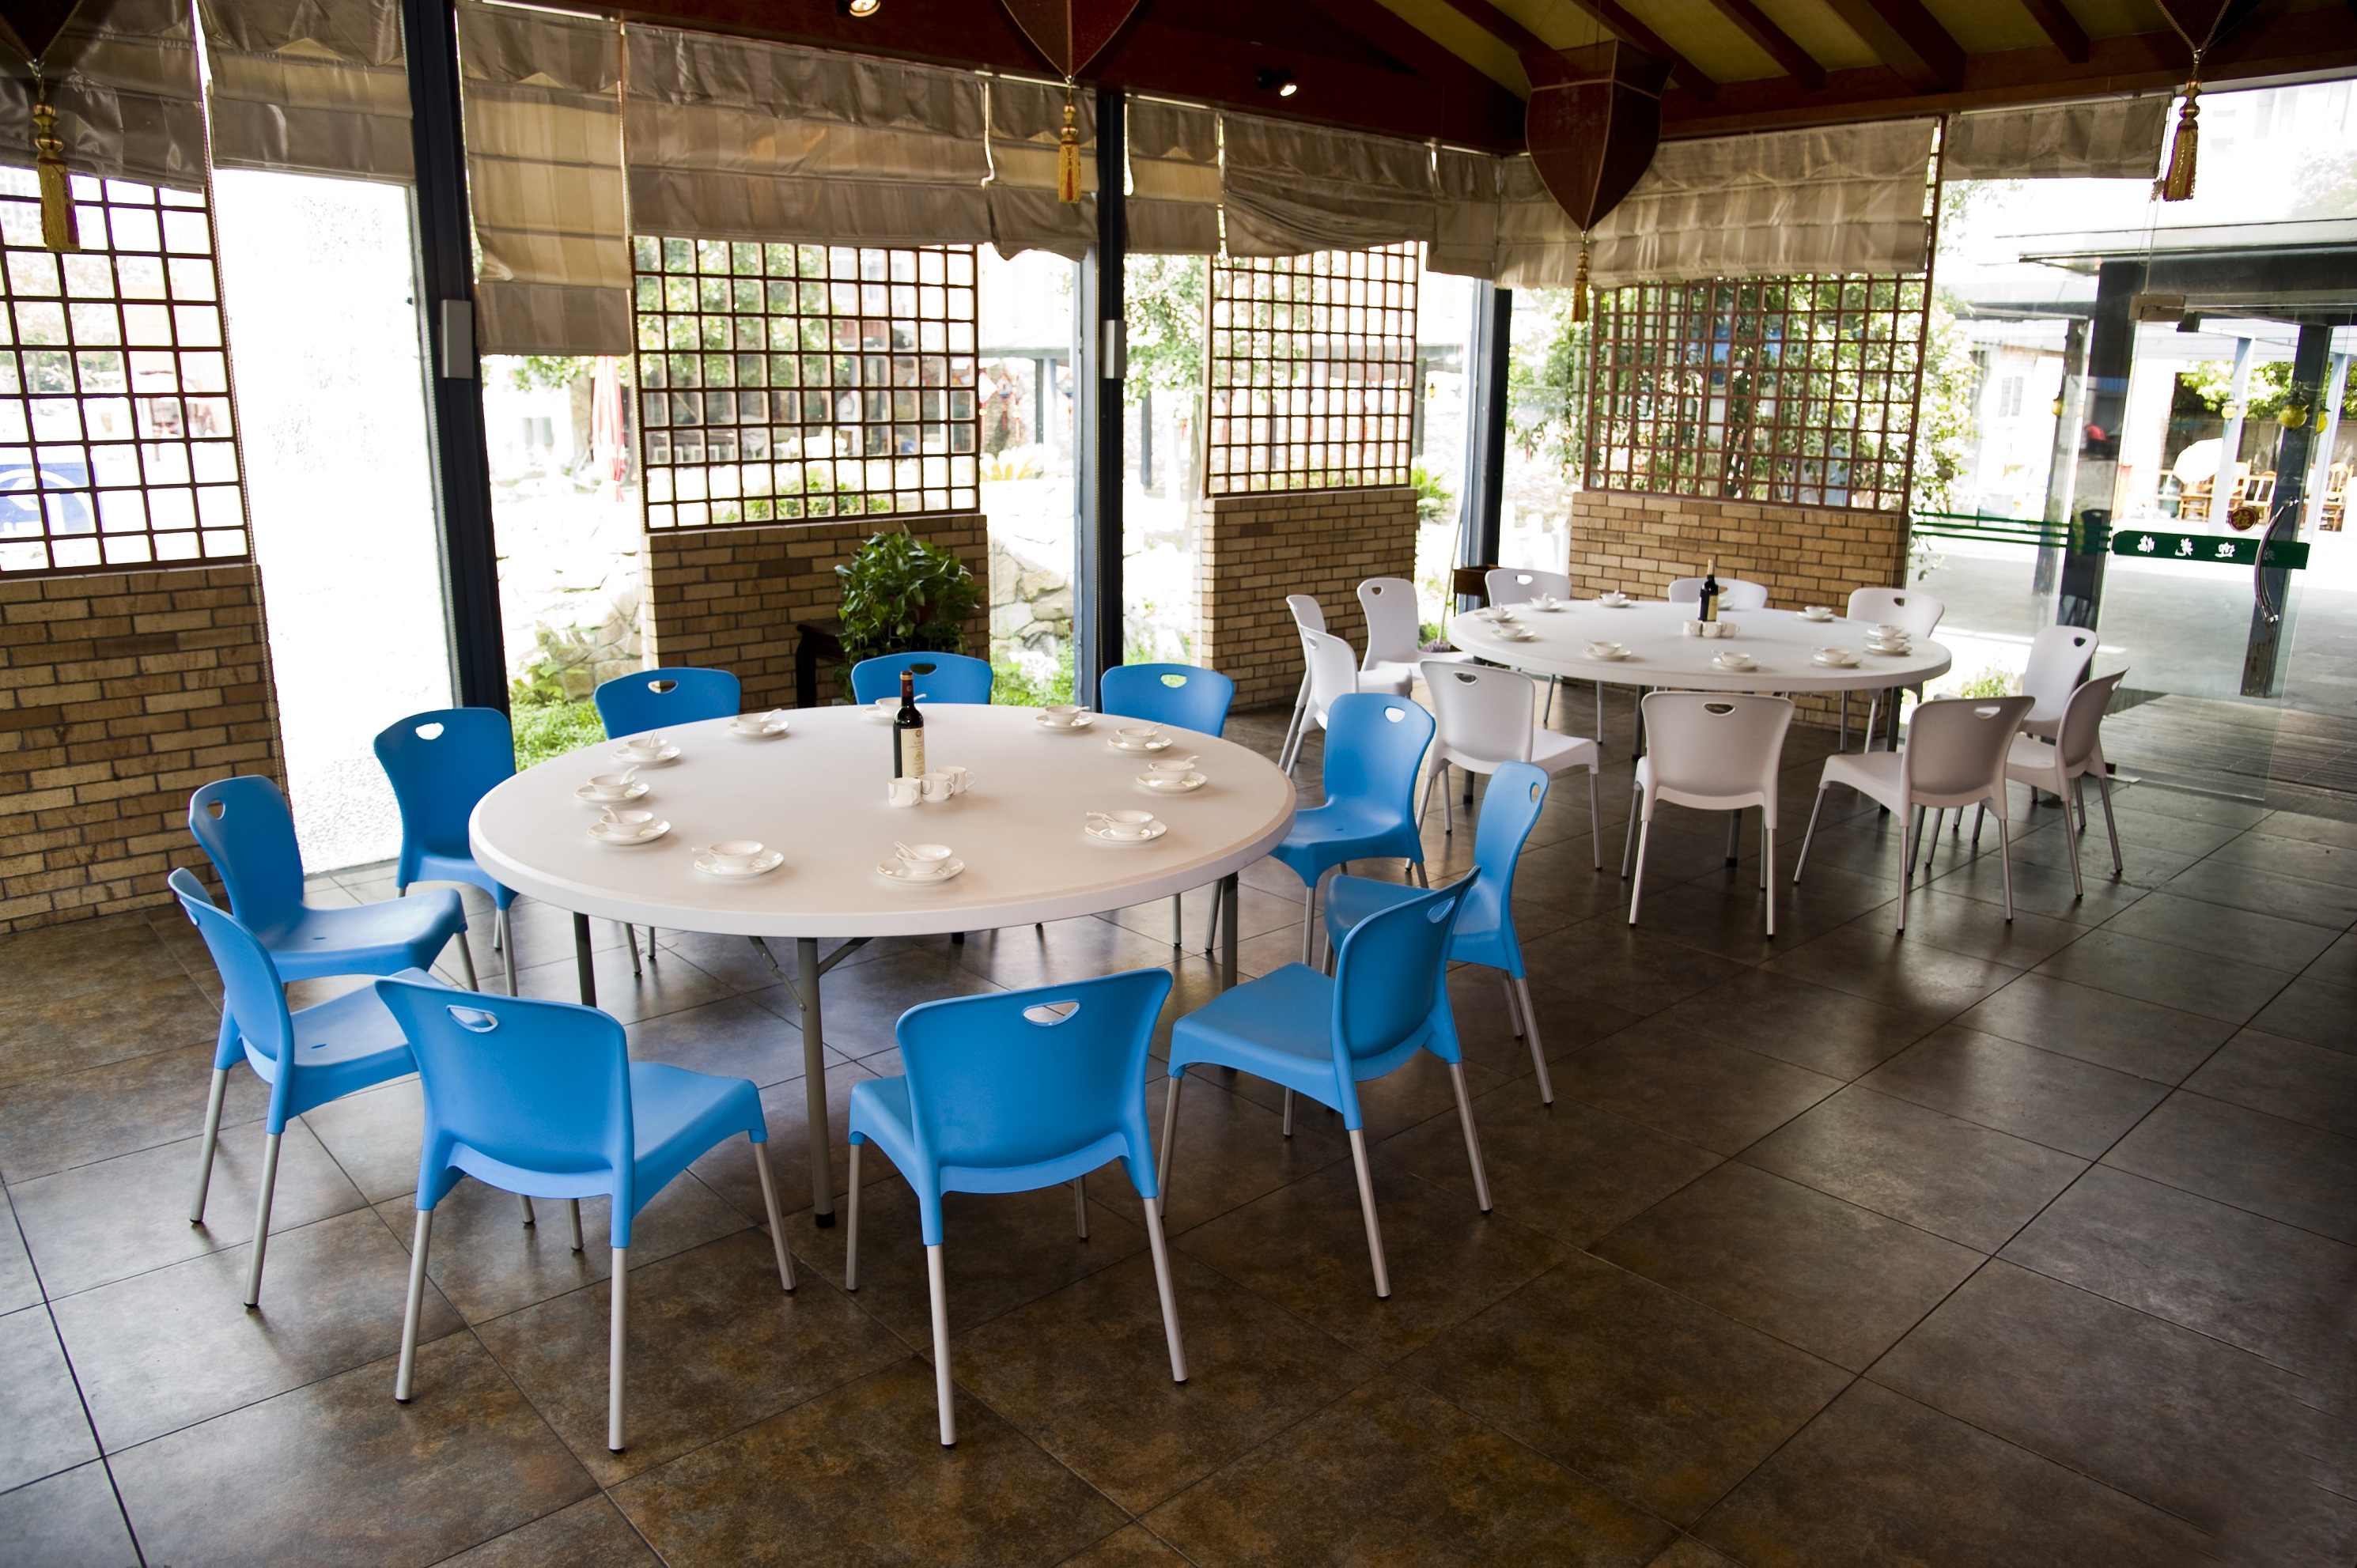 6 FT Restaurant Tables Chairs